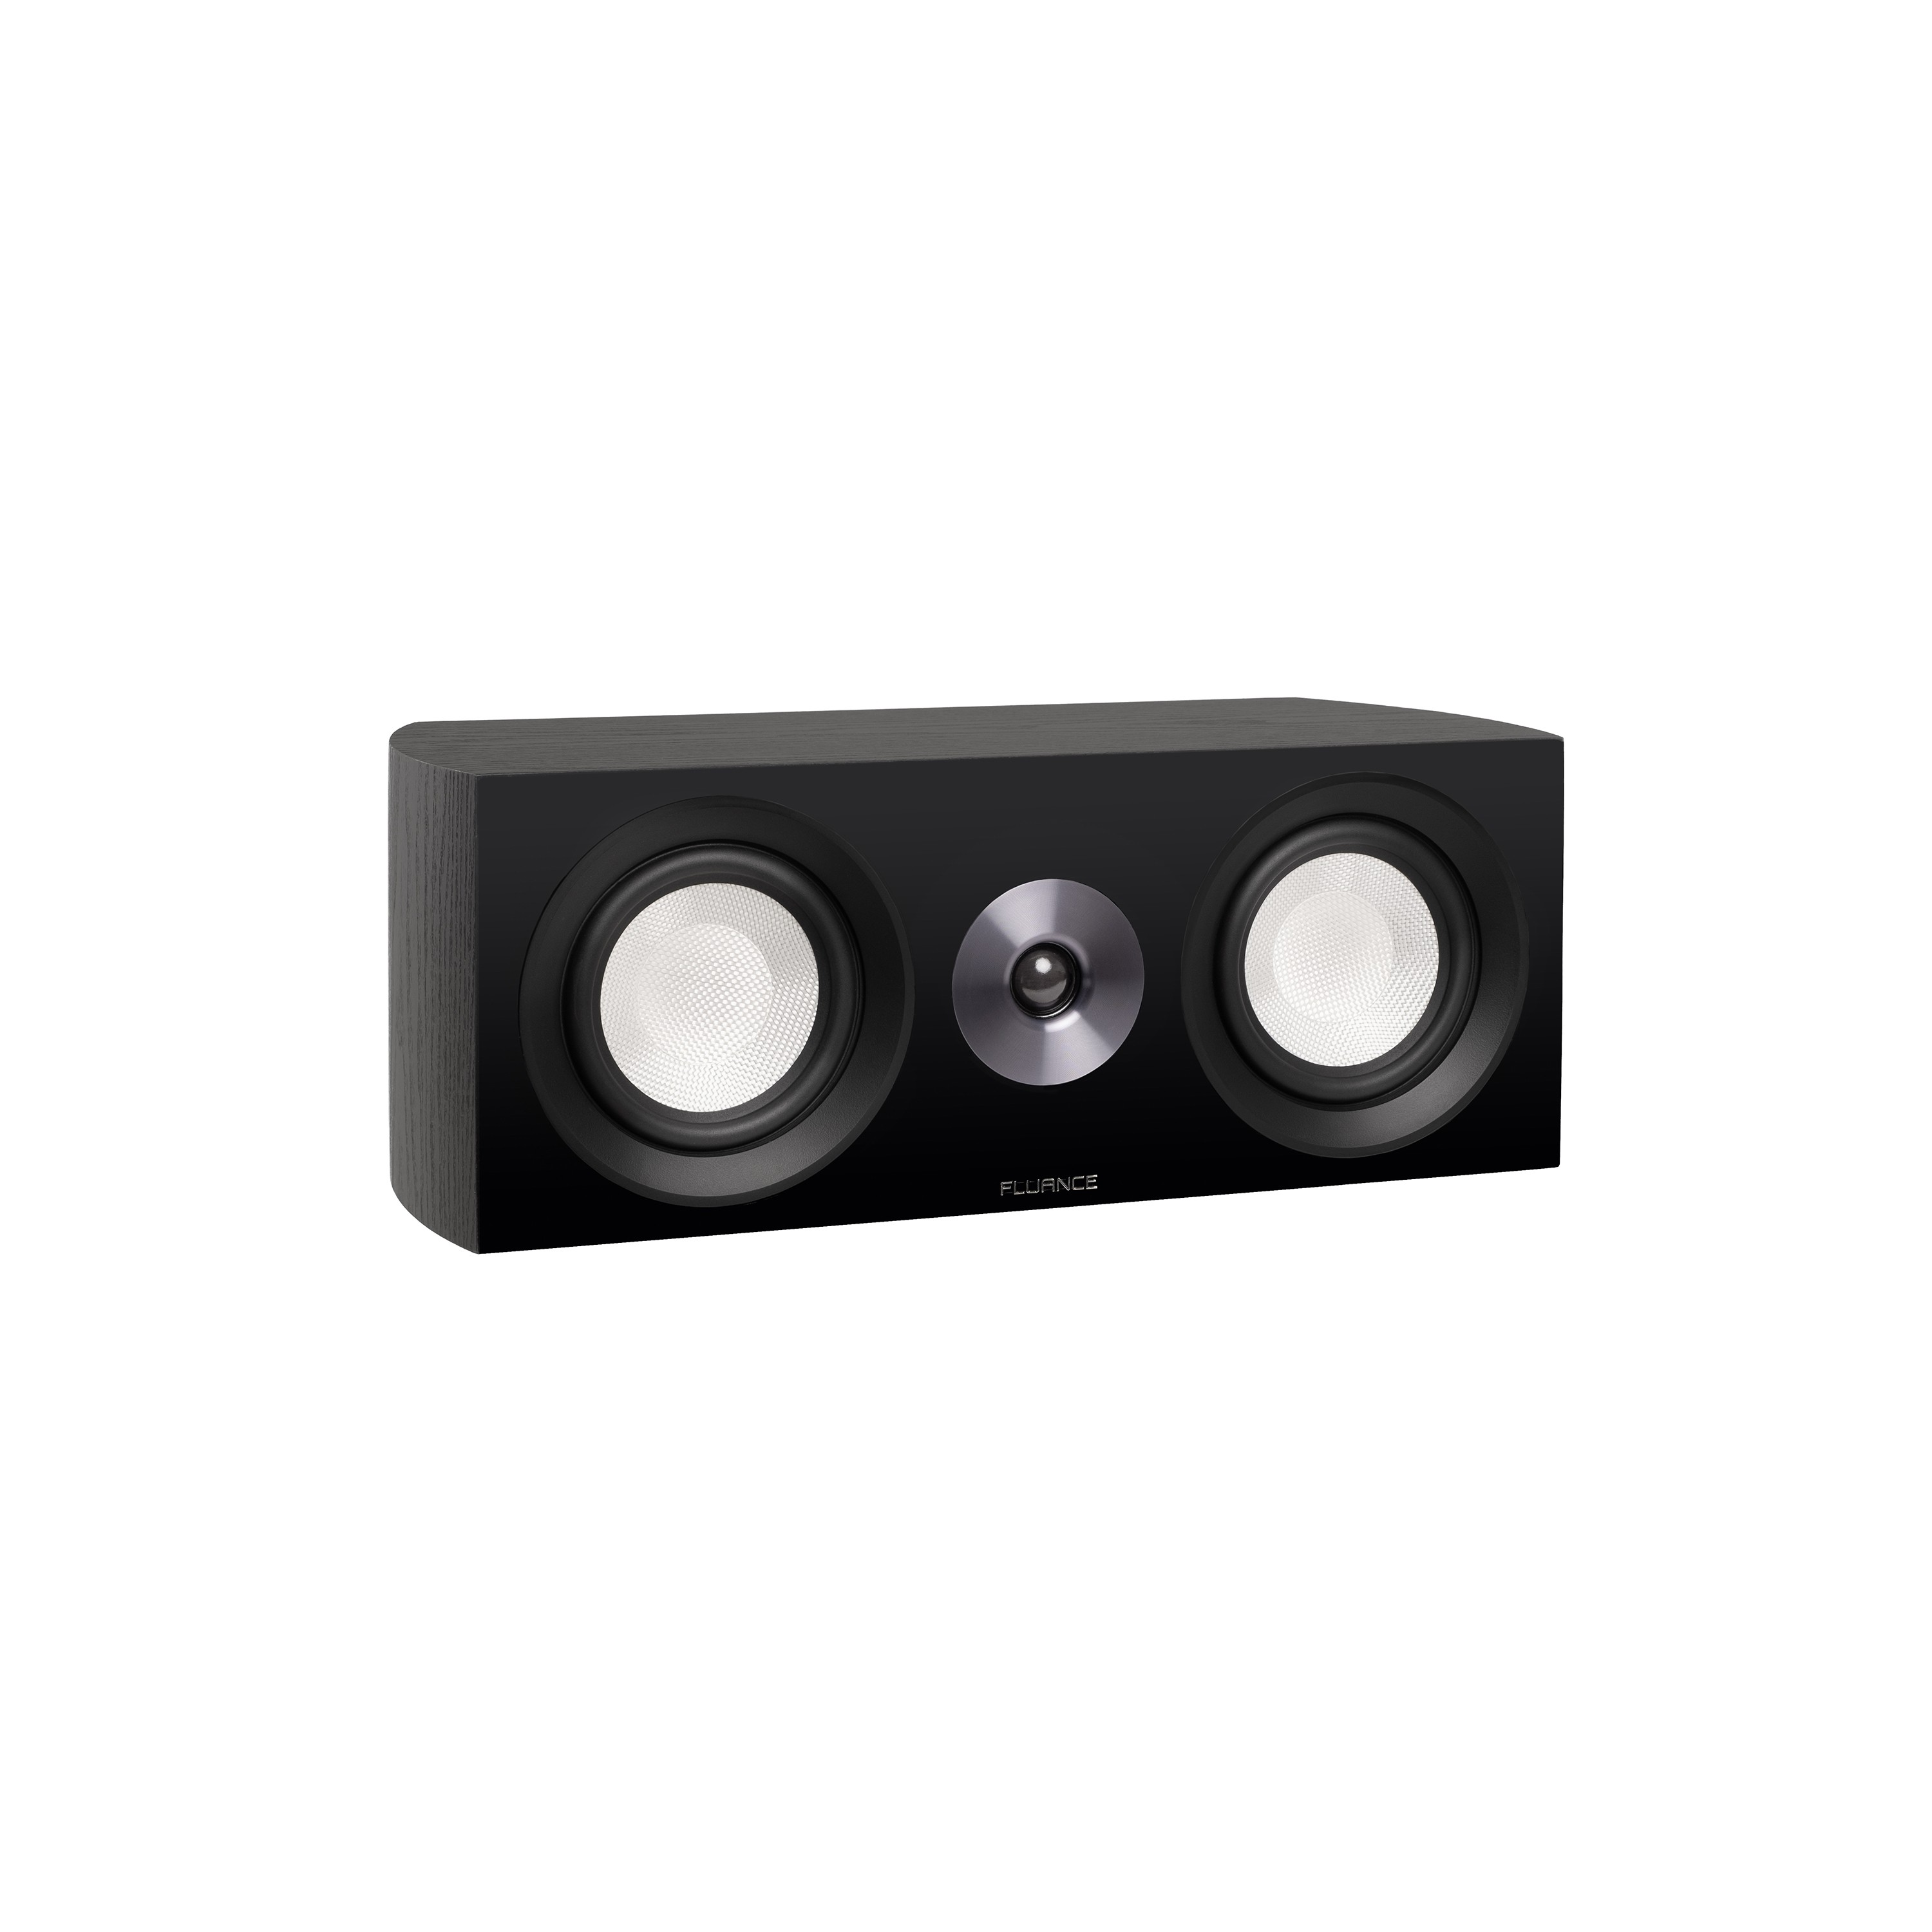 XL8C High Performance Two-Way Center Channel Speaker